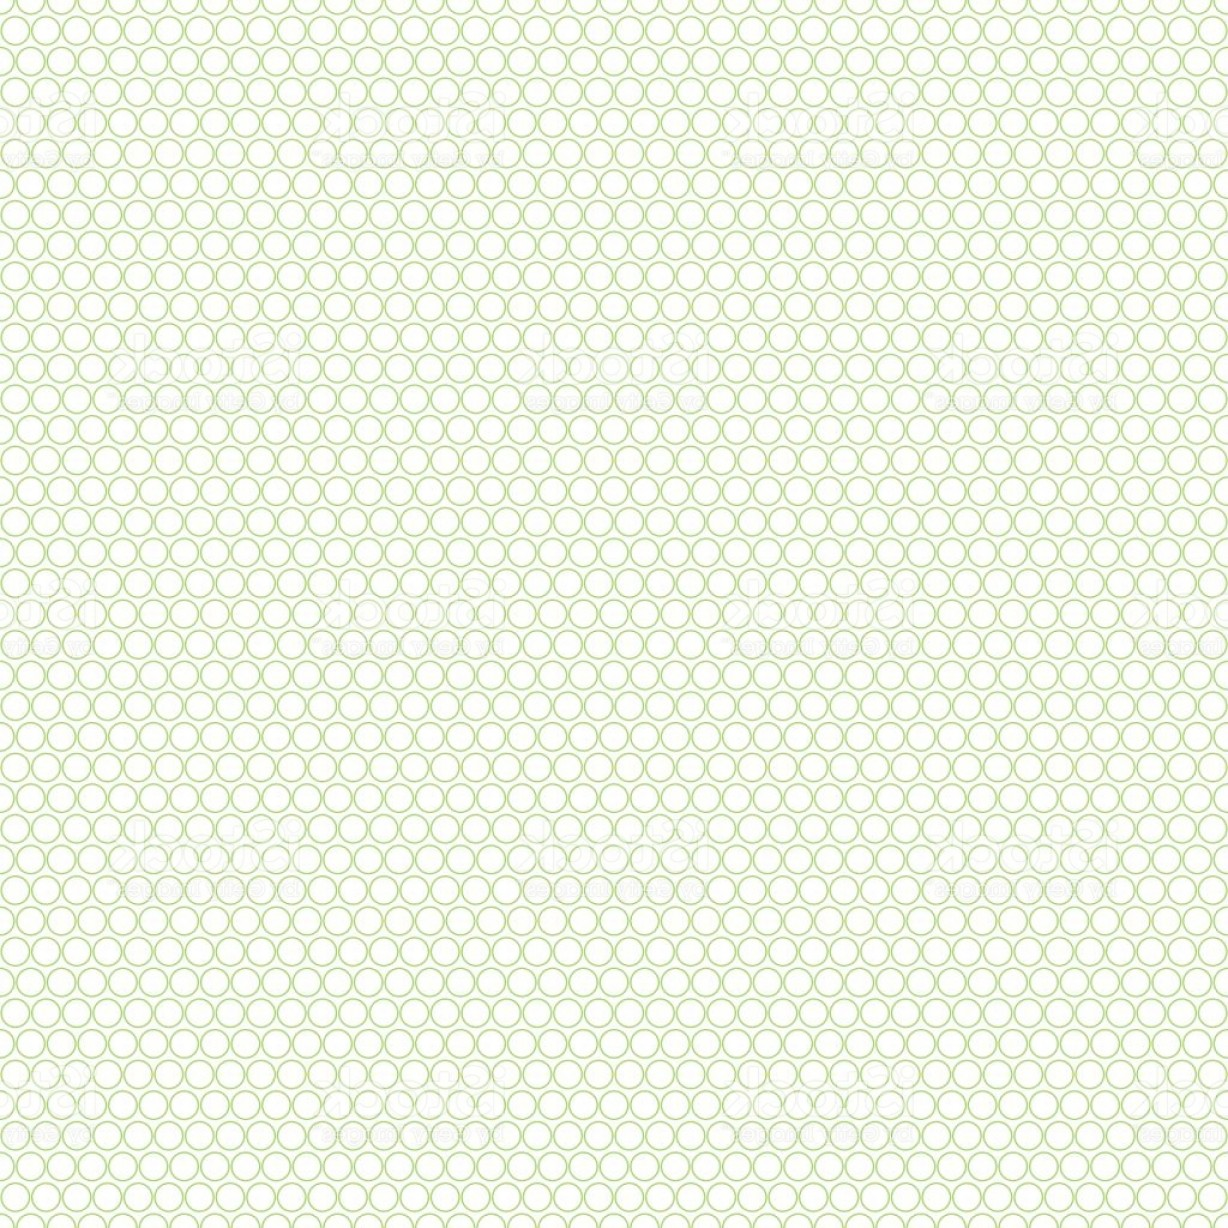 Security Vector Patterns: Seamless Pattern In Green Color Made Of Circles Inspired Of Banknote Money Design Gm